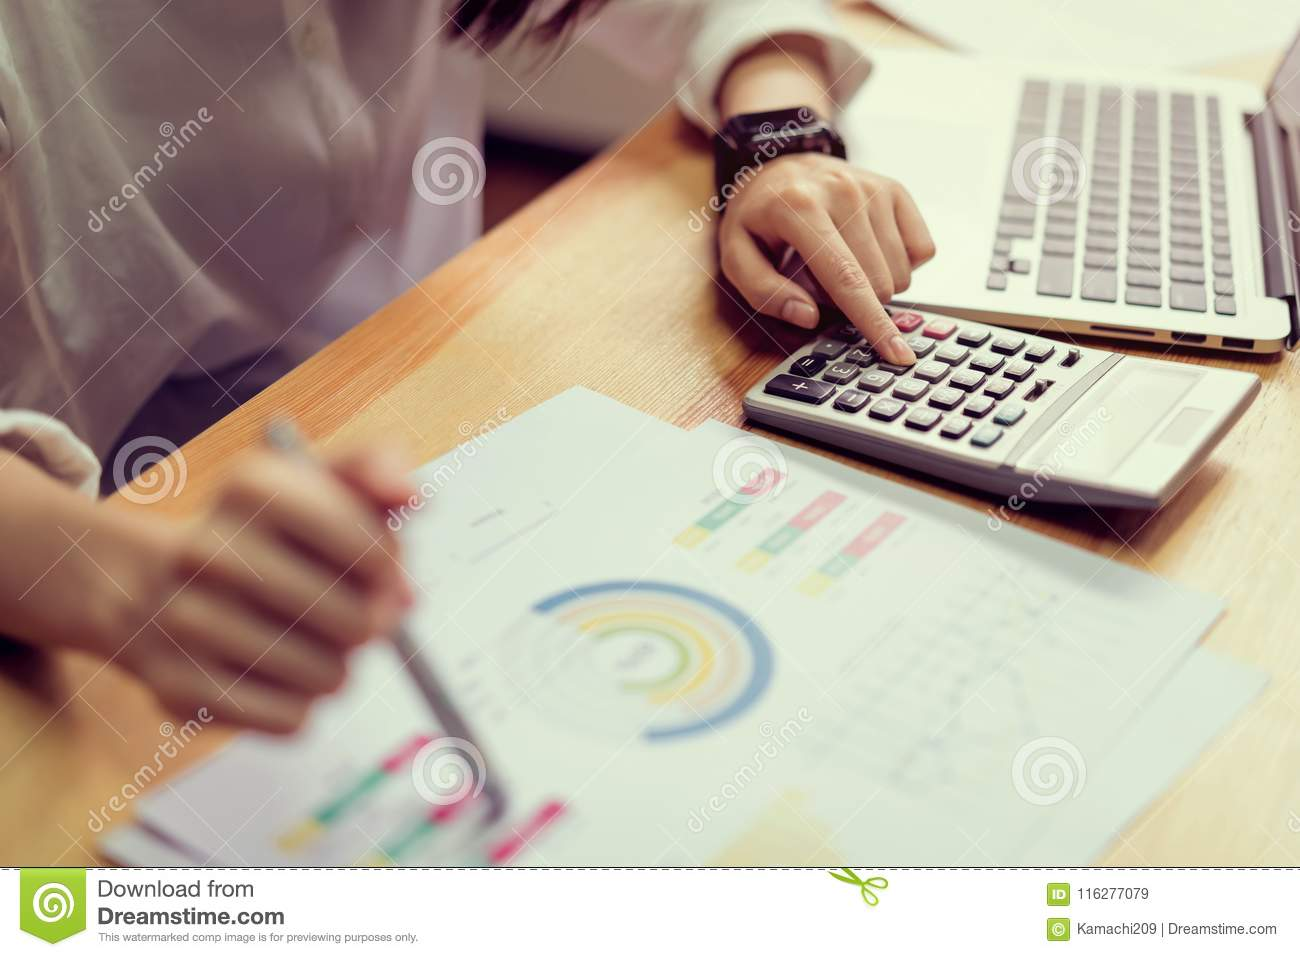 Businesswoman in office and use computer and calculator to perform financial accounting.